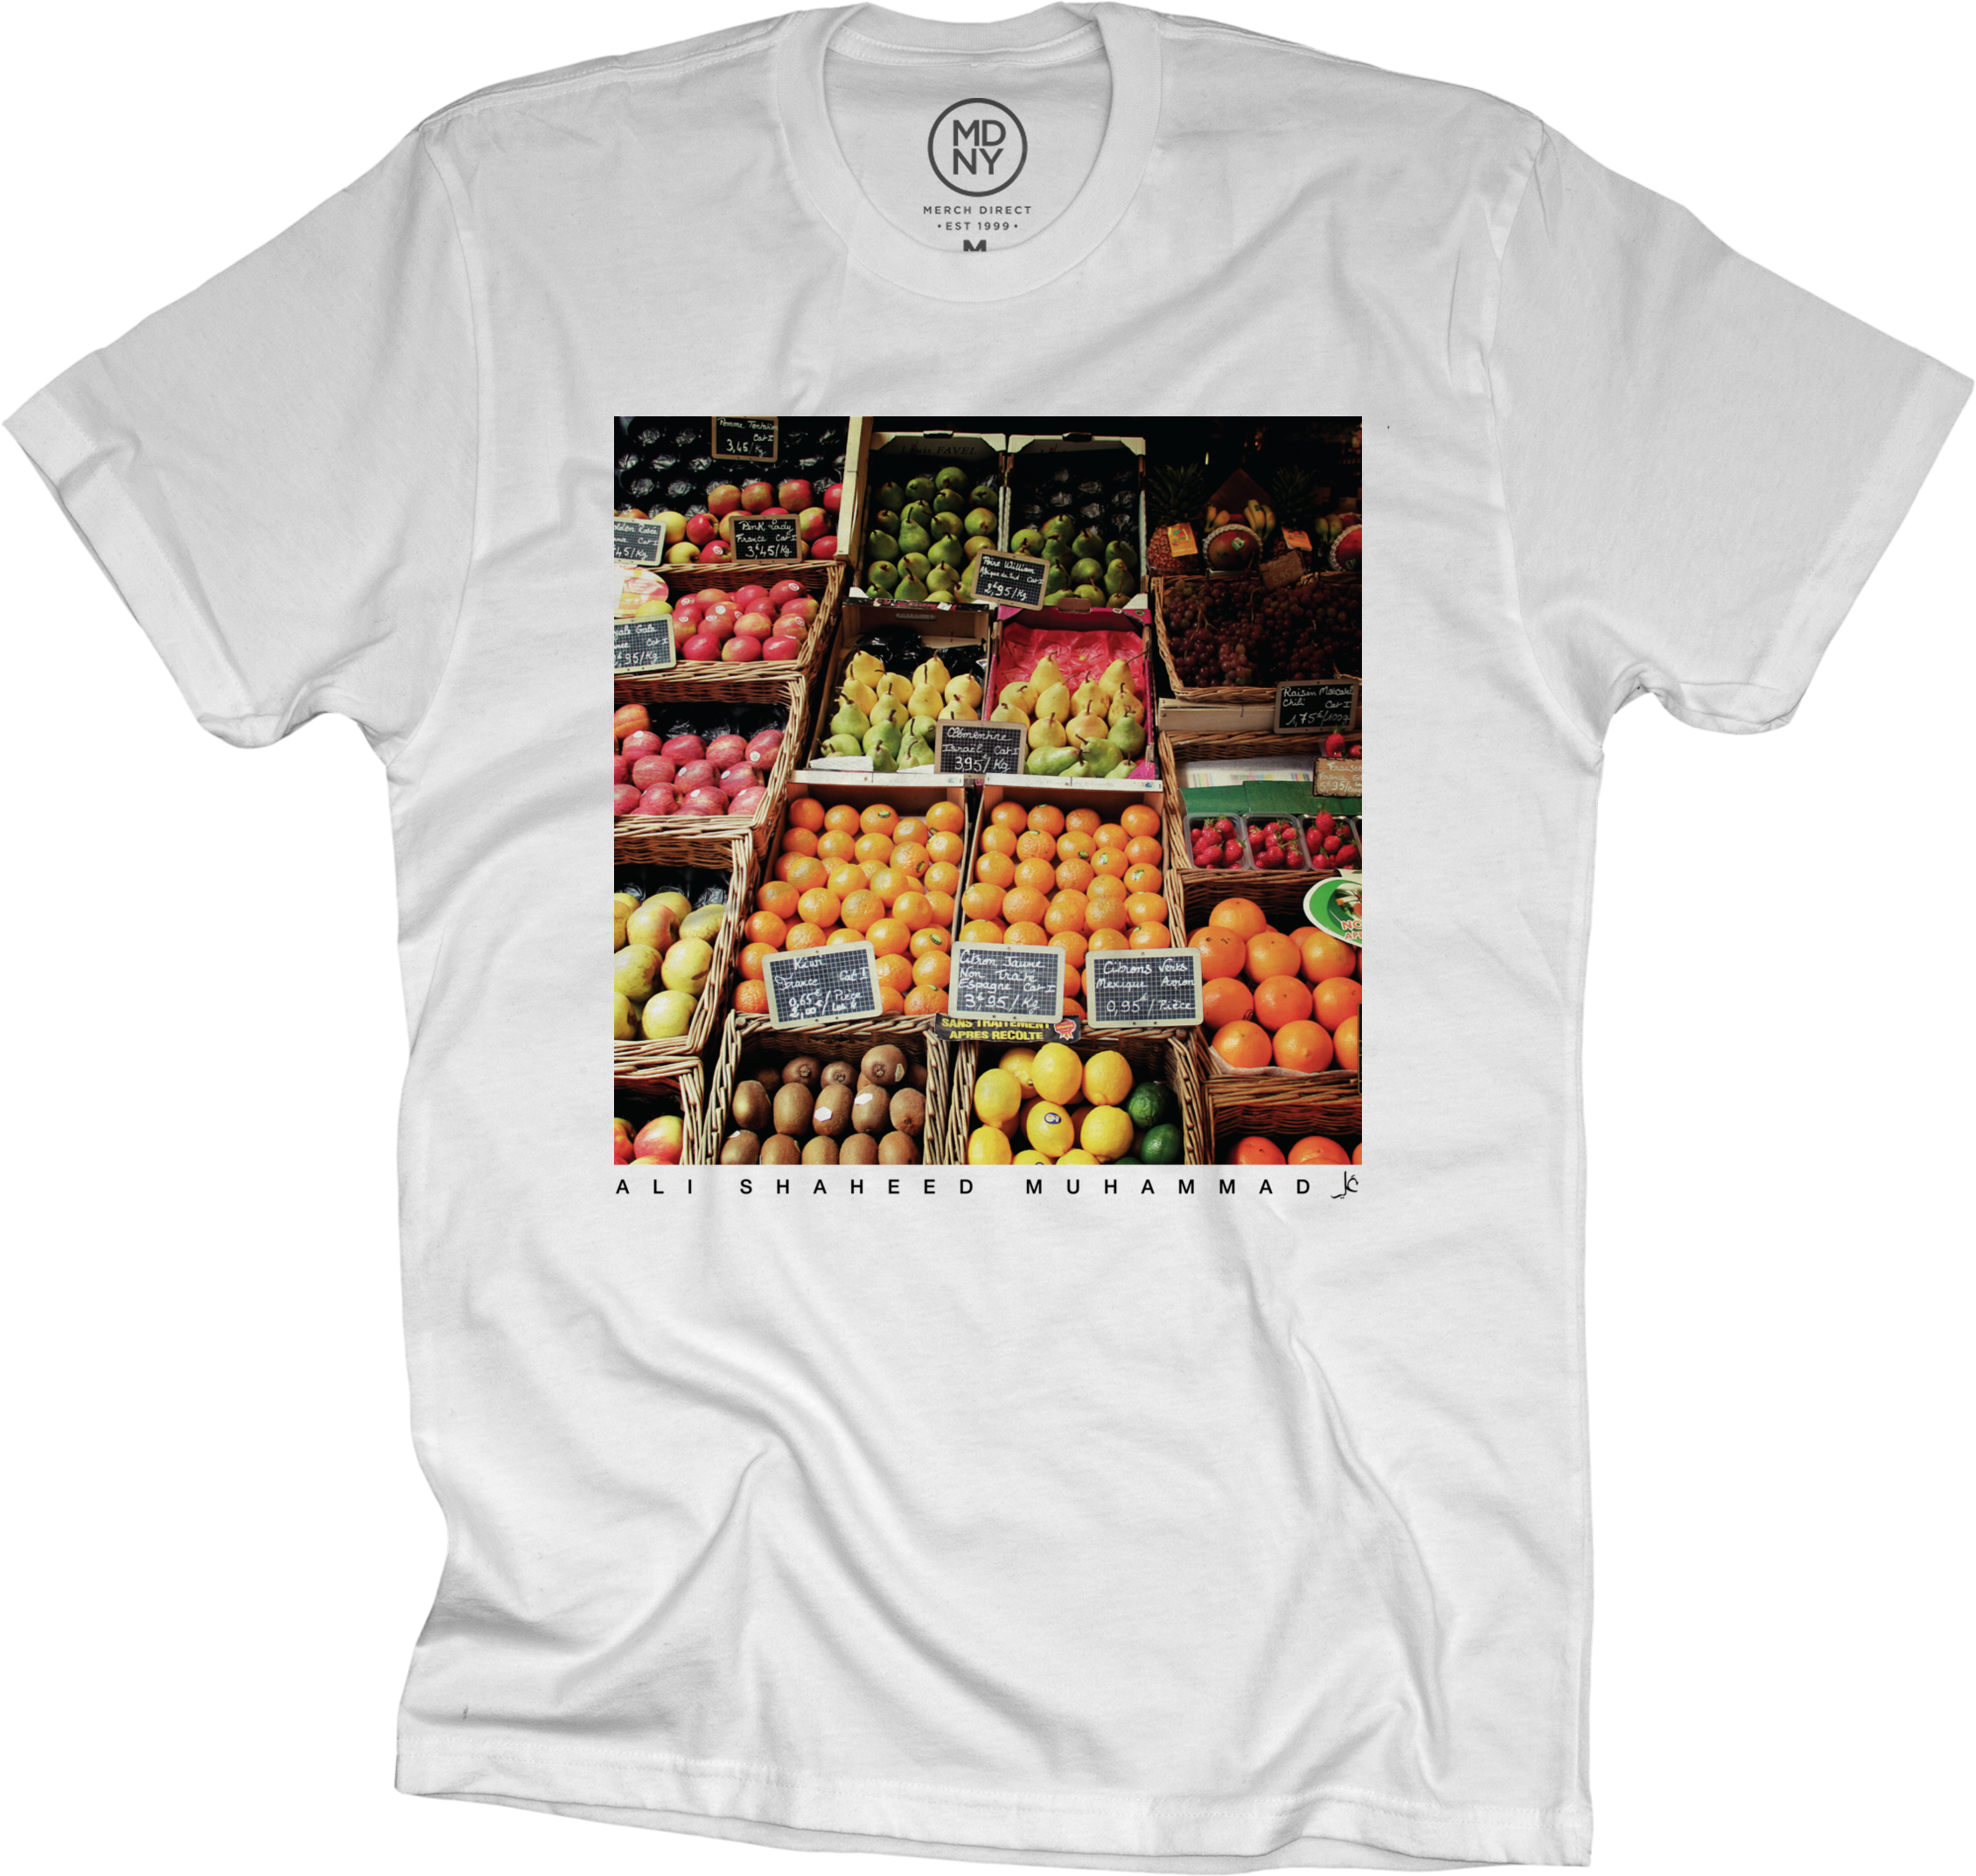 ali shaheed market on white t shirt. Black Bedroom Furniture Sets. Home Design Ideas